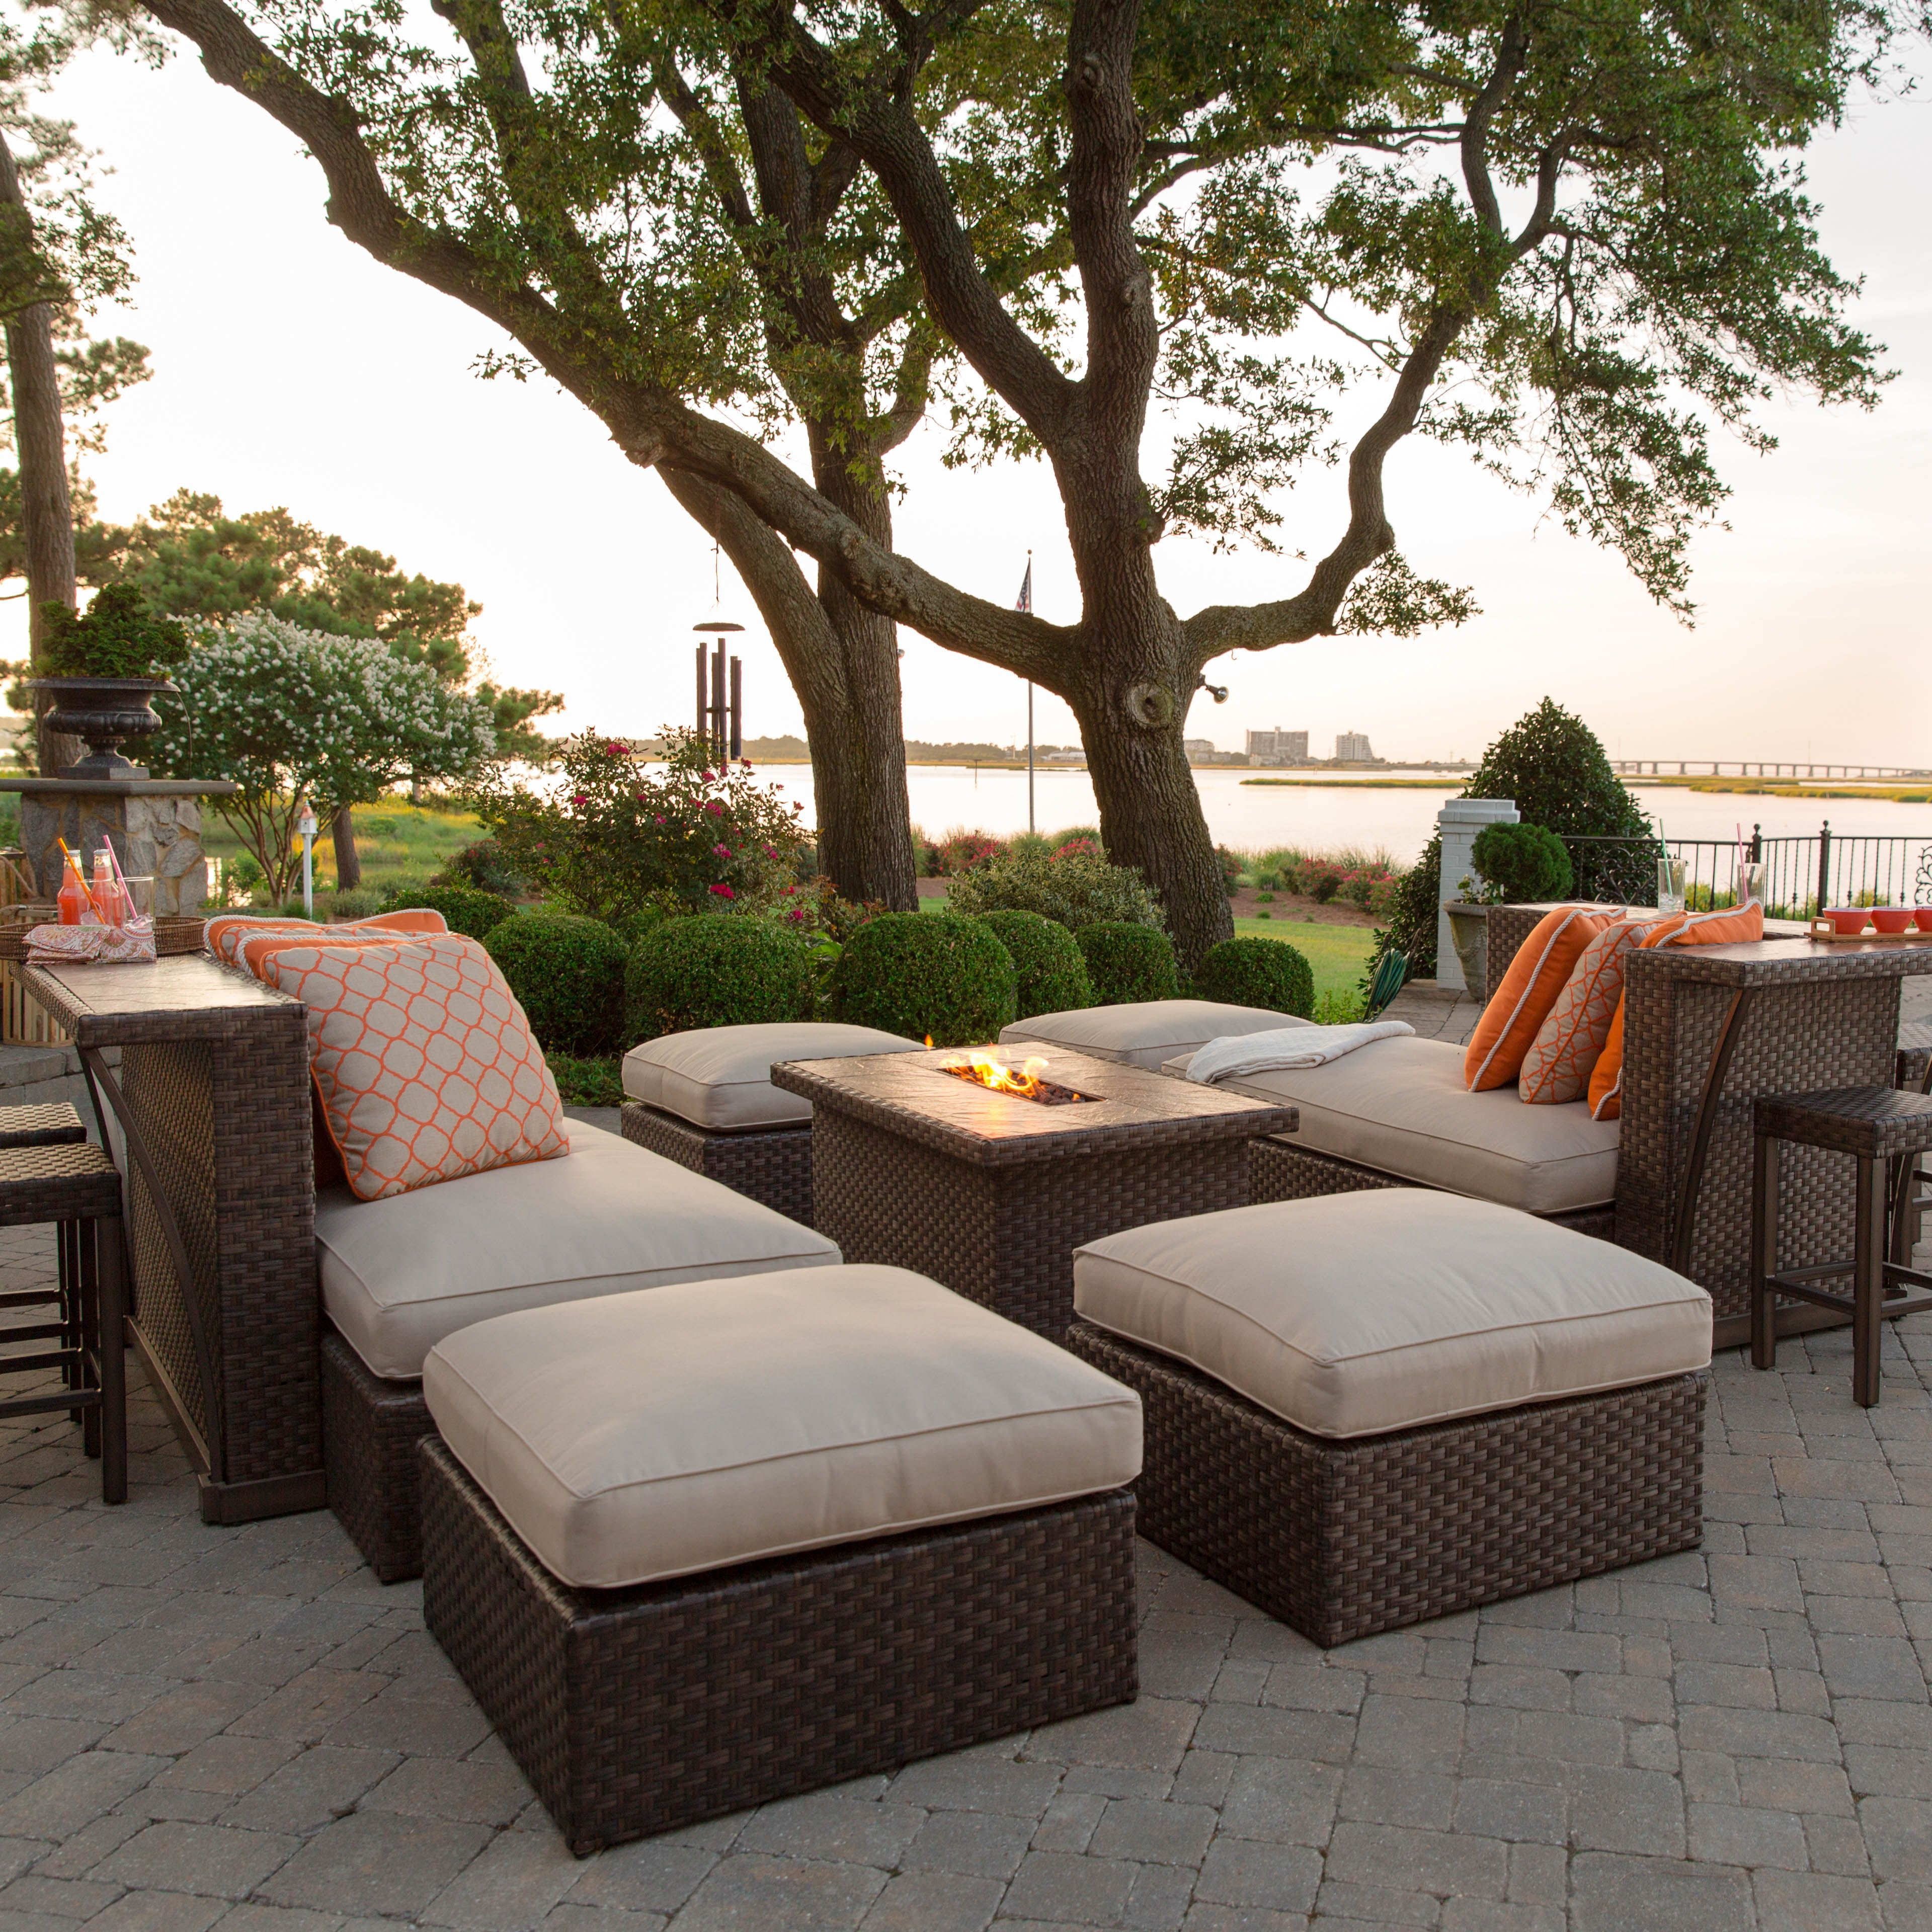 Gorgeous entertaining center with fire pit from Agio This